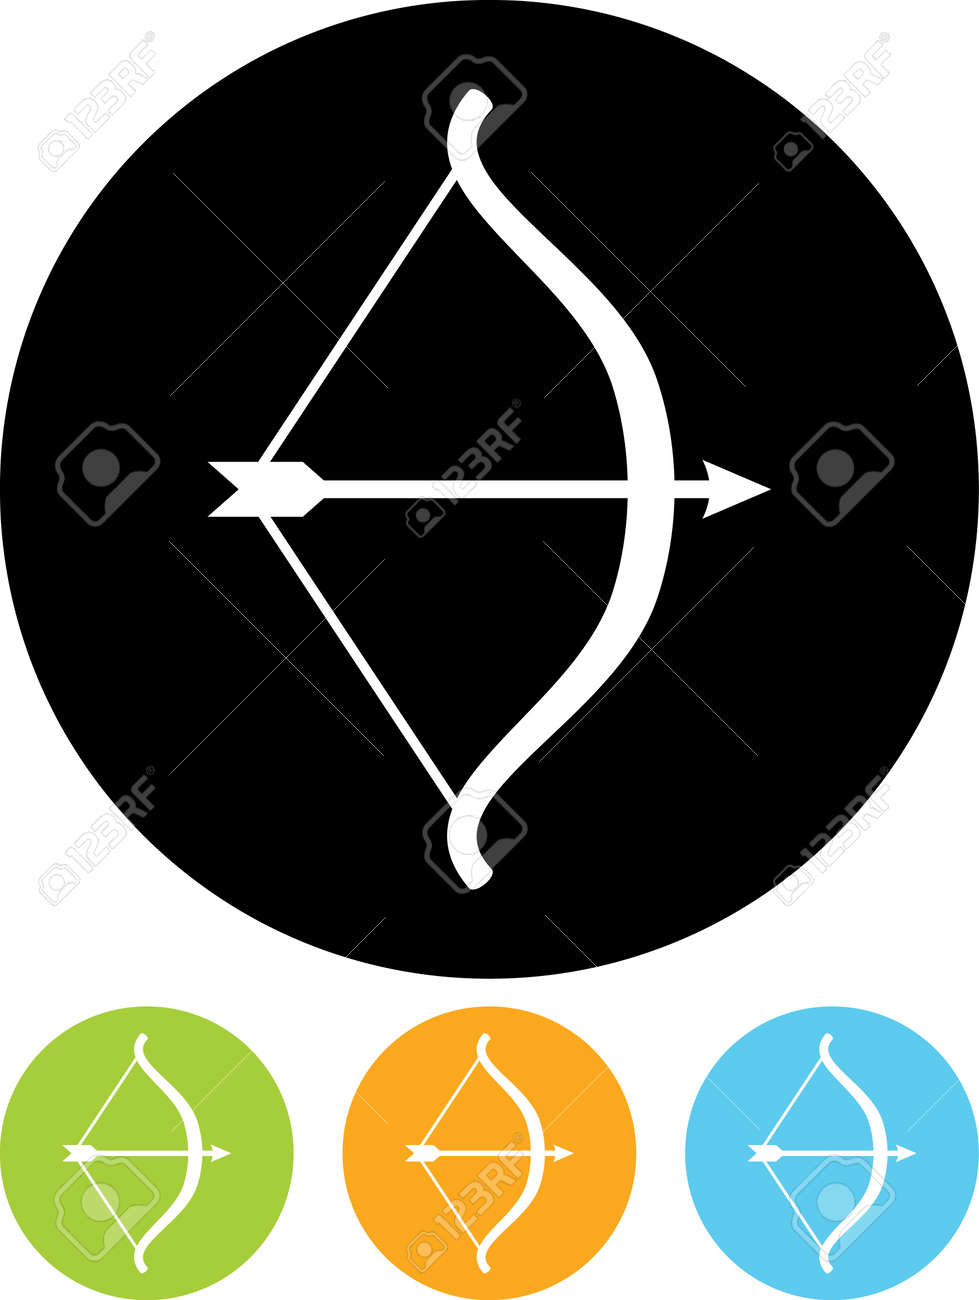 Bow and Arrow - Vector icon isolated - 15737321